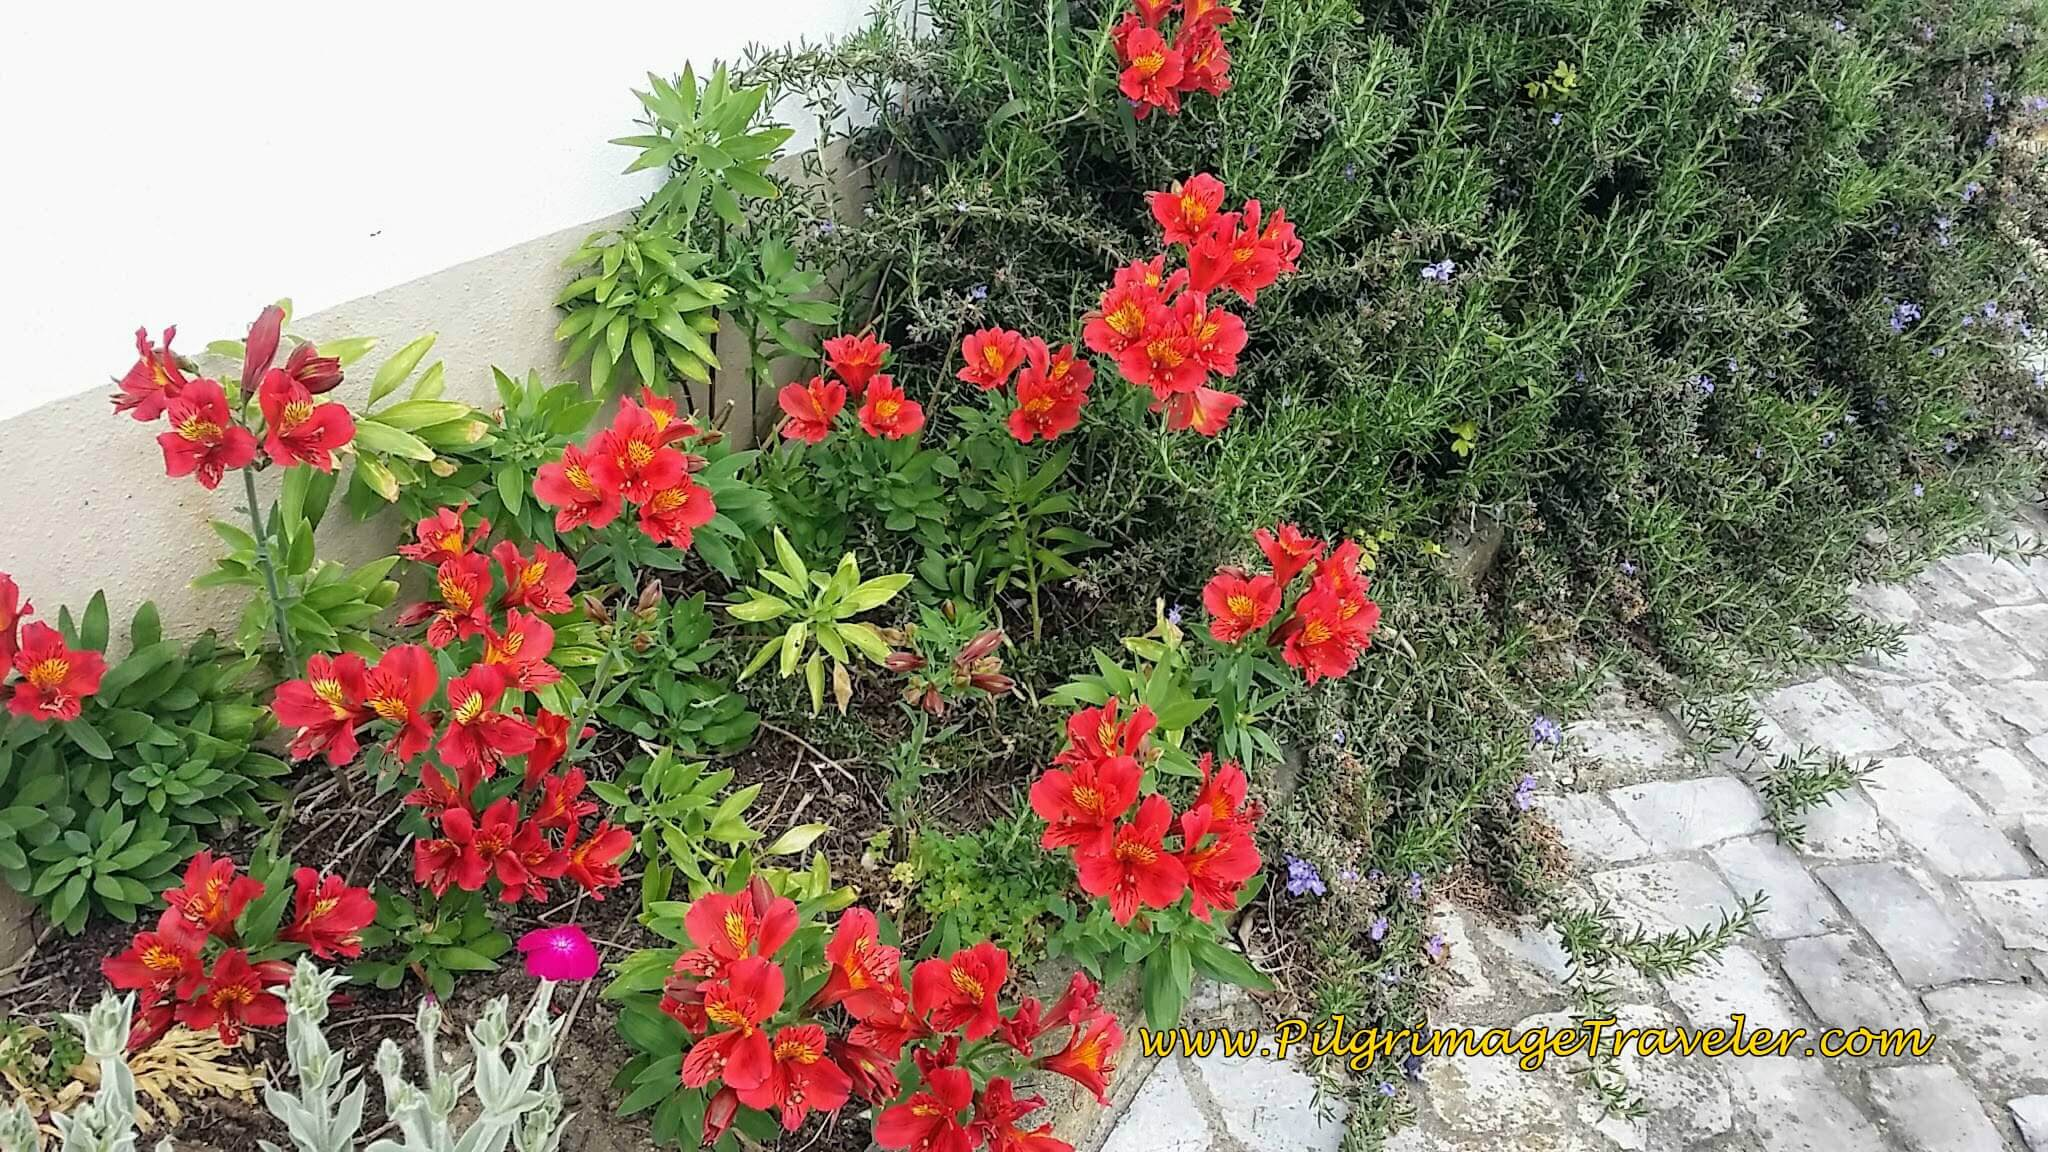 Gorgeous Alstroemeria in Lendlosa, Portugal